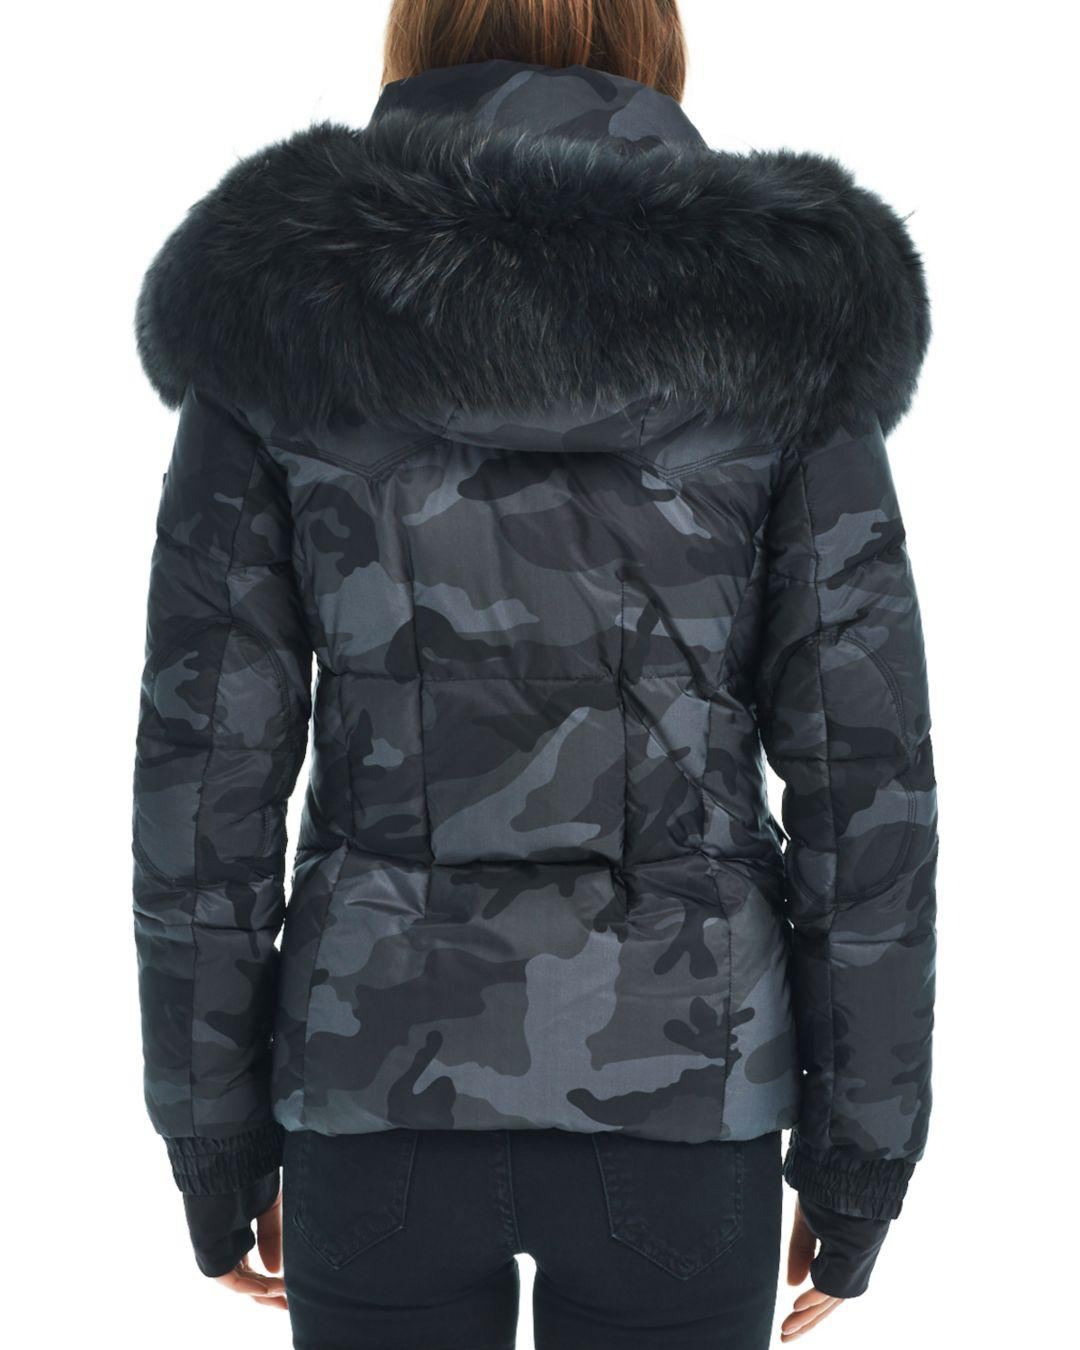 cb00e57e12670 Lyst - Sam. Camo Fur Trim Jetset Down Jacket in Gray